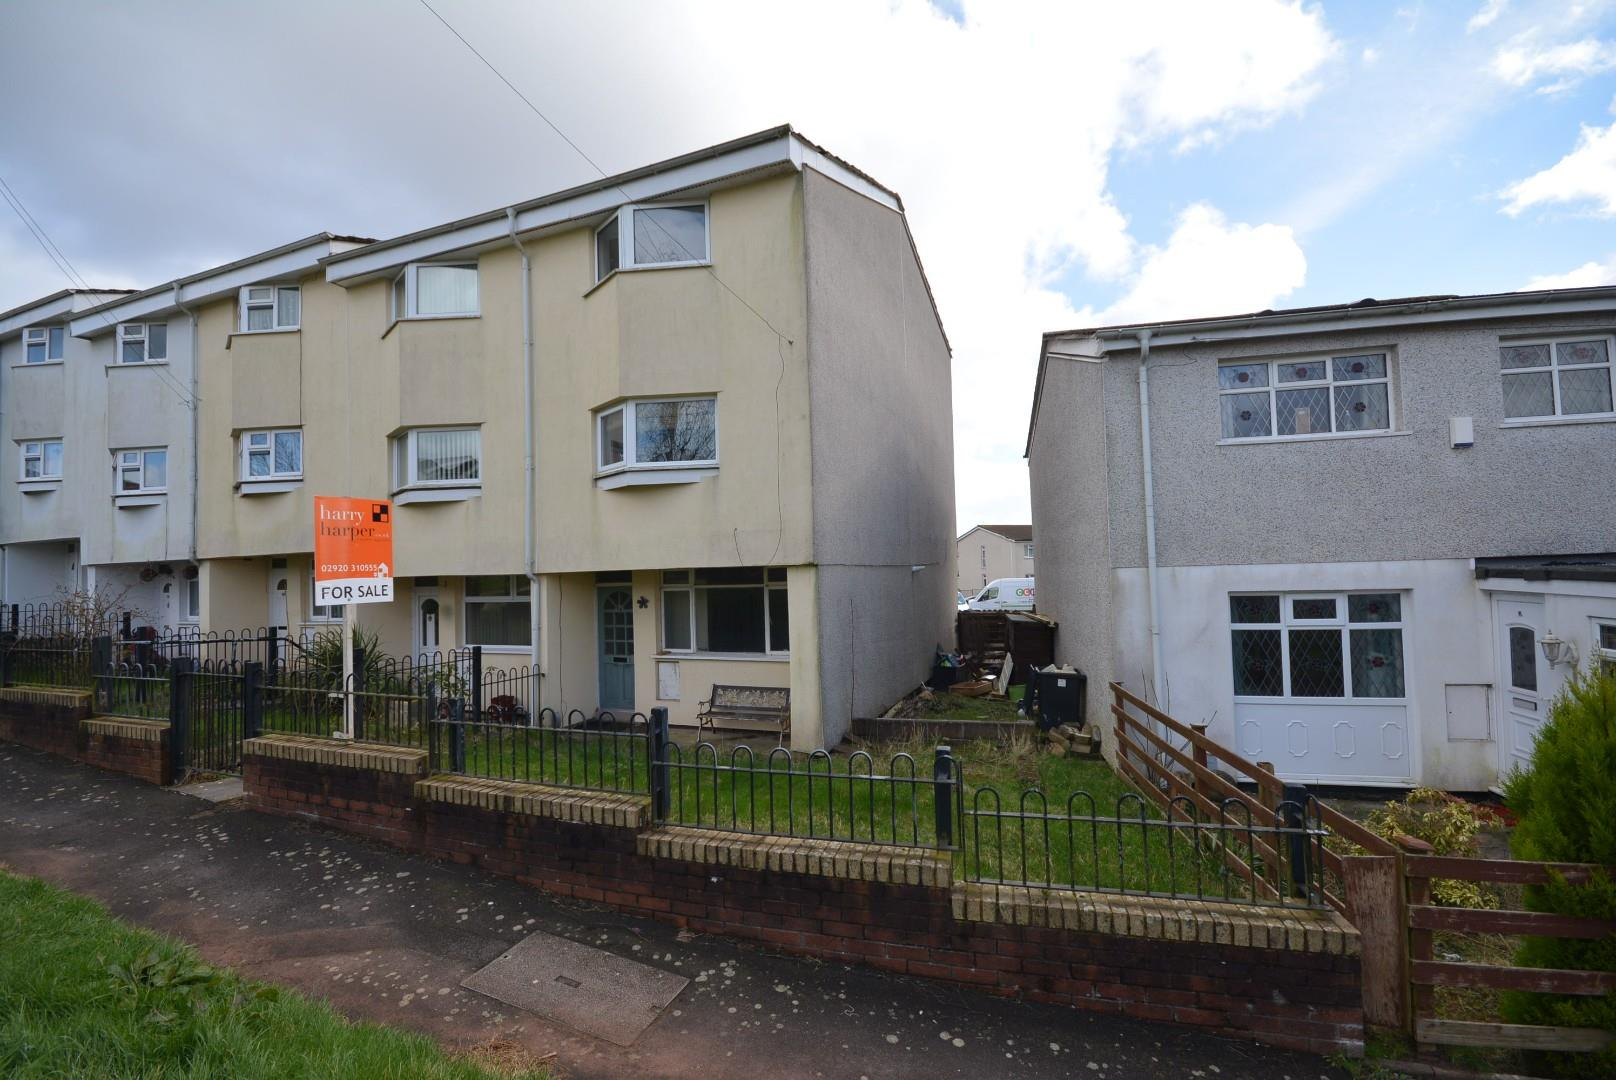 4 bed end of terrace house for sale in Bryn Celyn, Cardiff, CF23